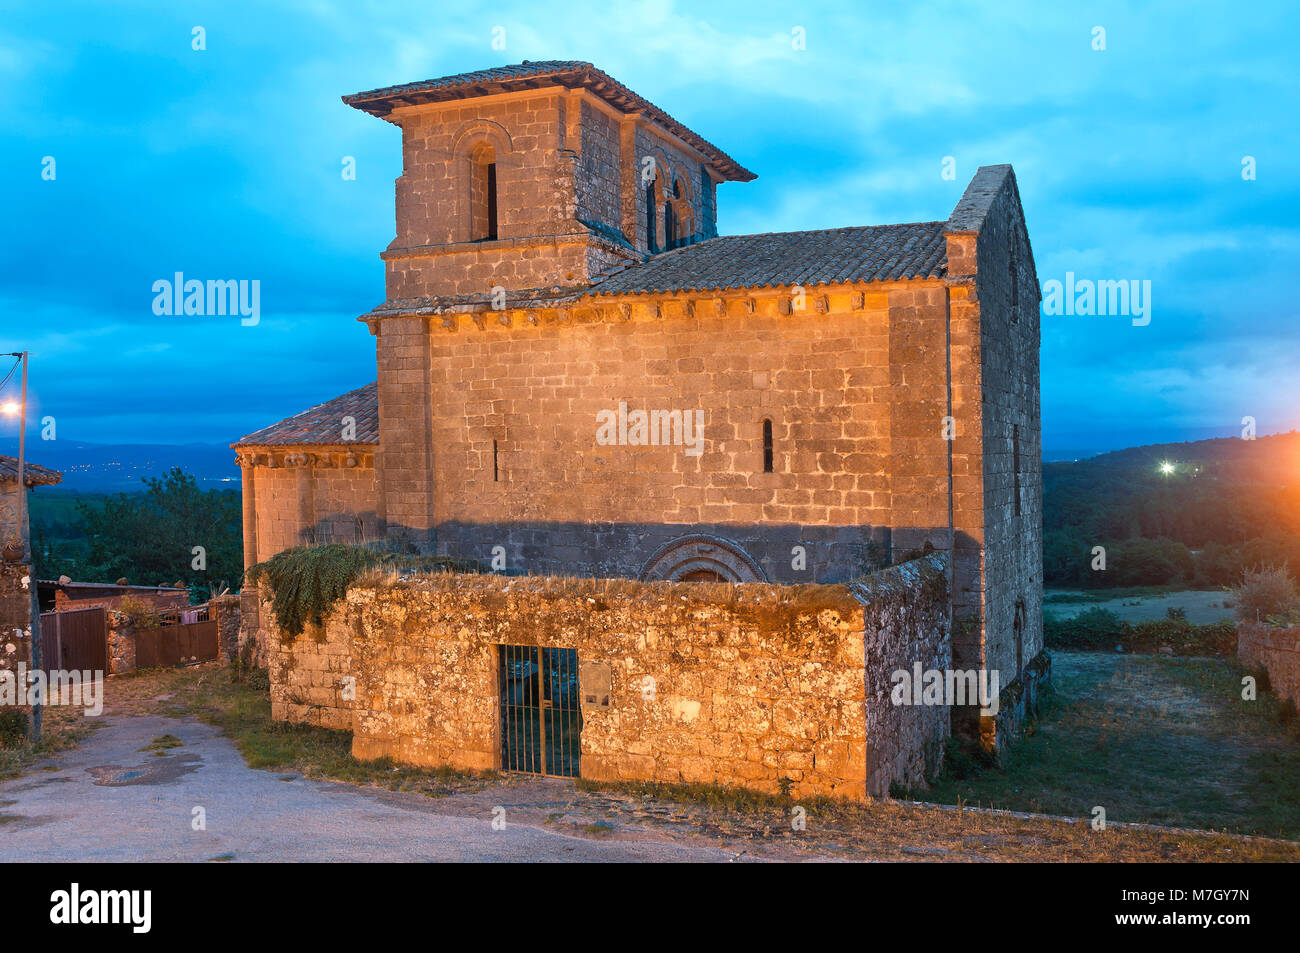 Landscape with Church of the romanesque monastery of San Miguel - 12th century, Eire, Lugo province, Region of Galicia, - Stock Image